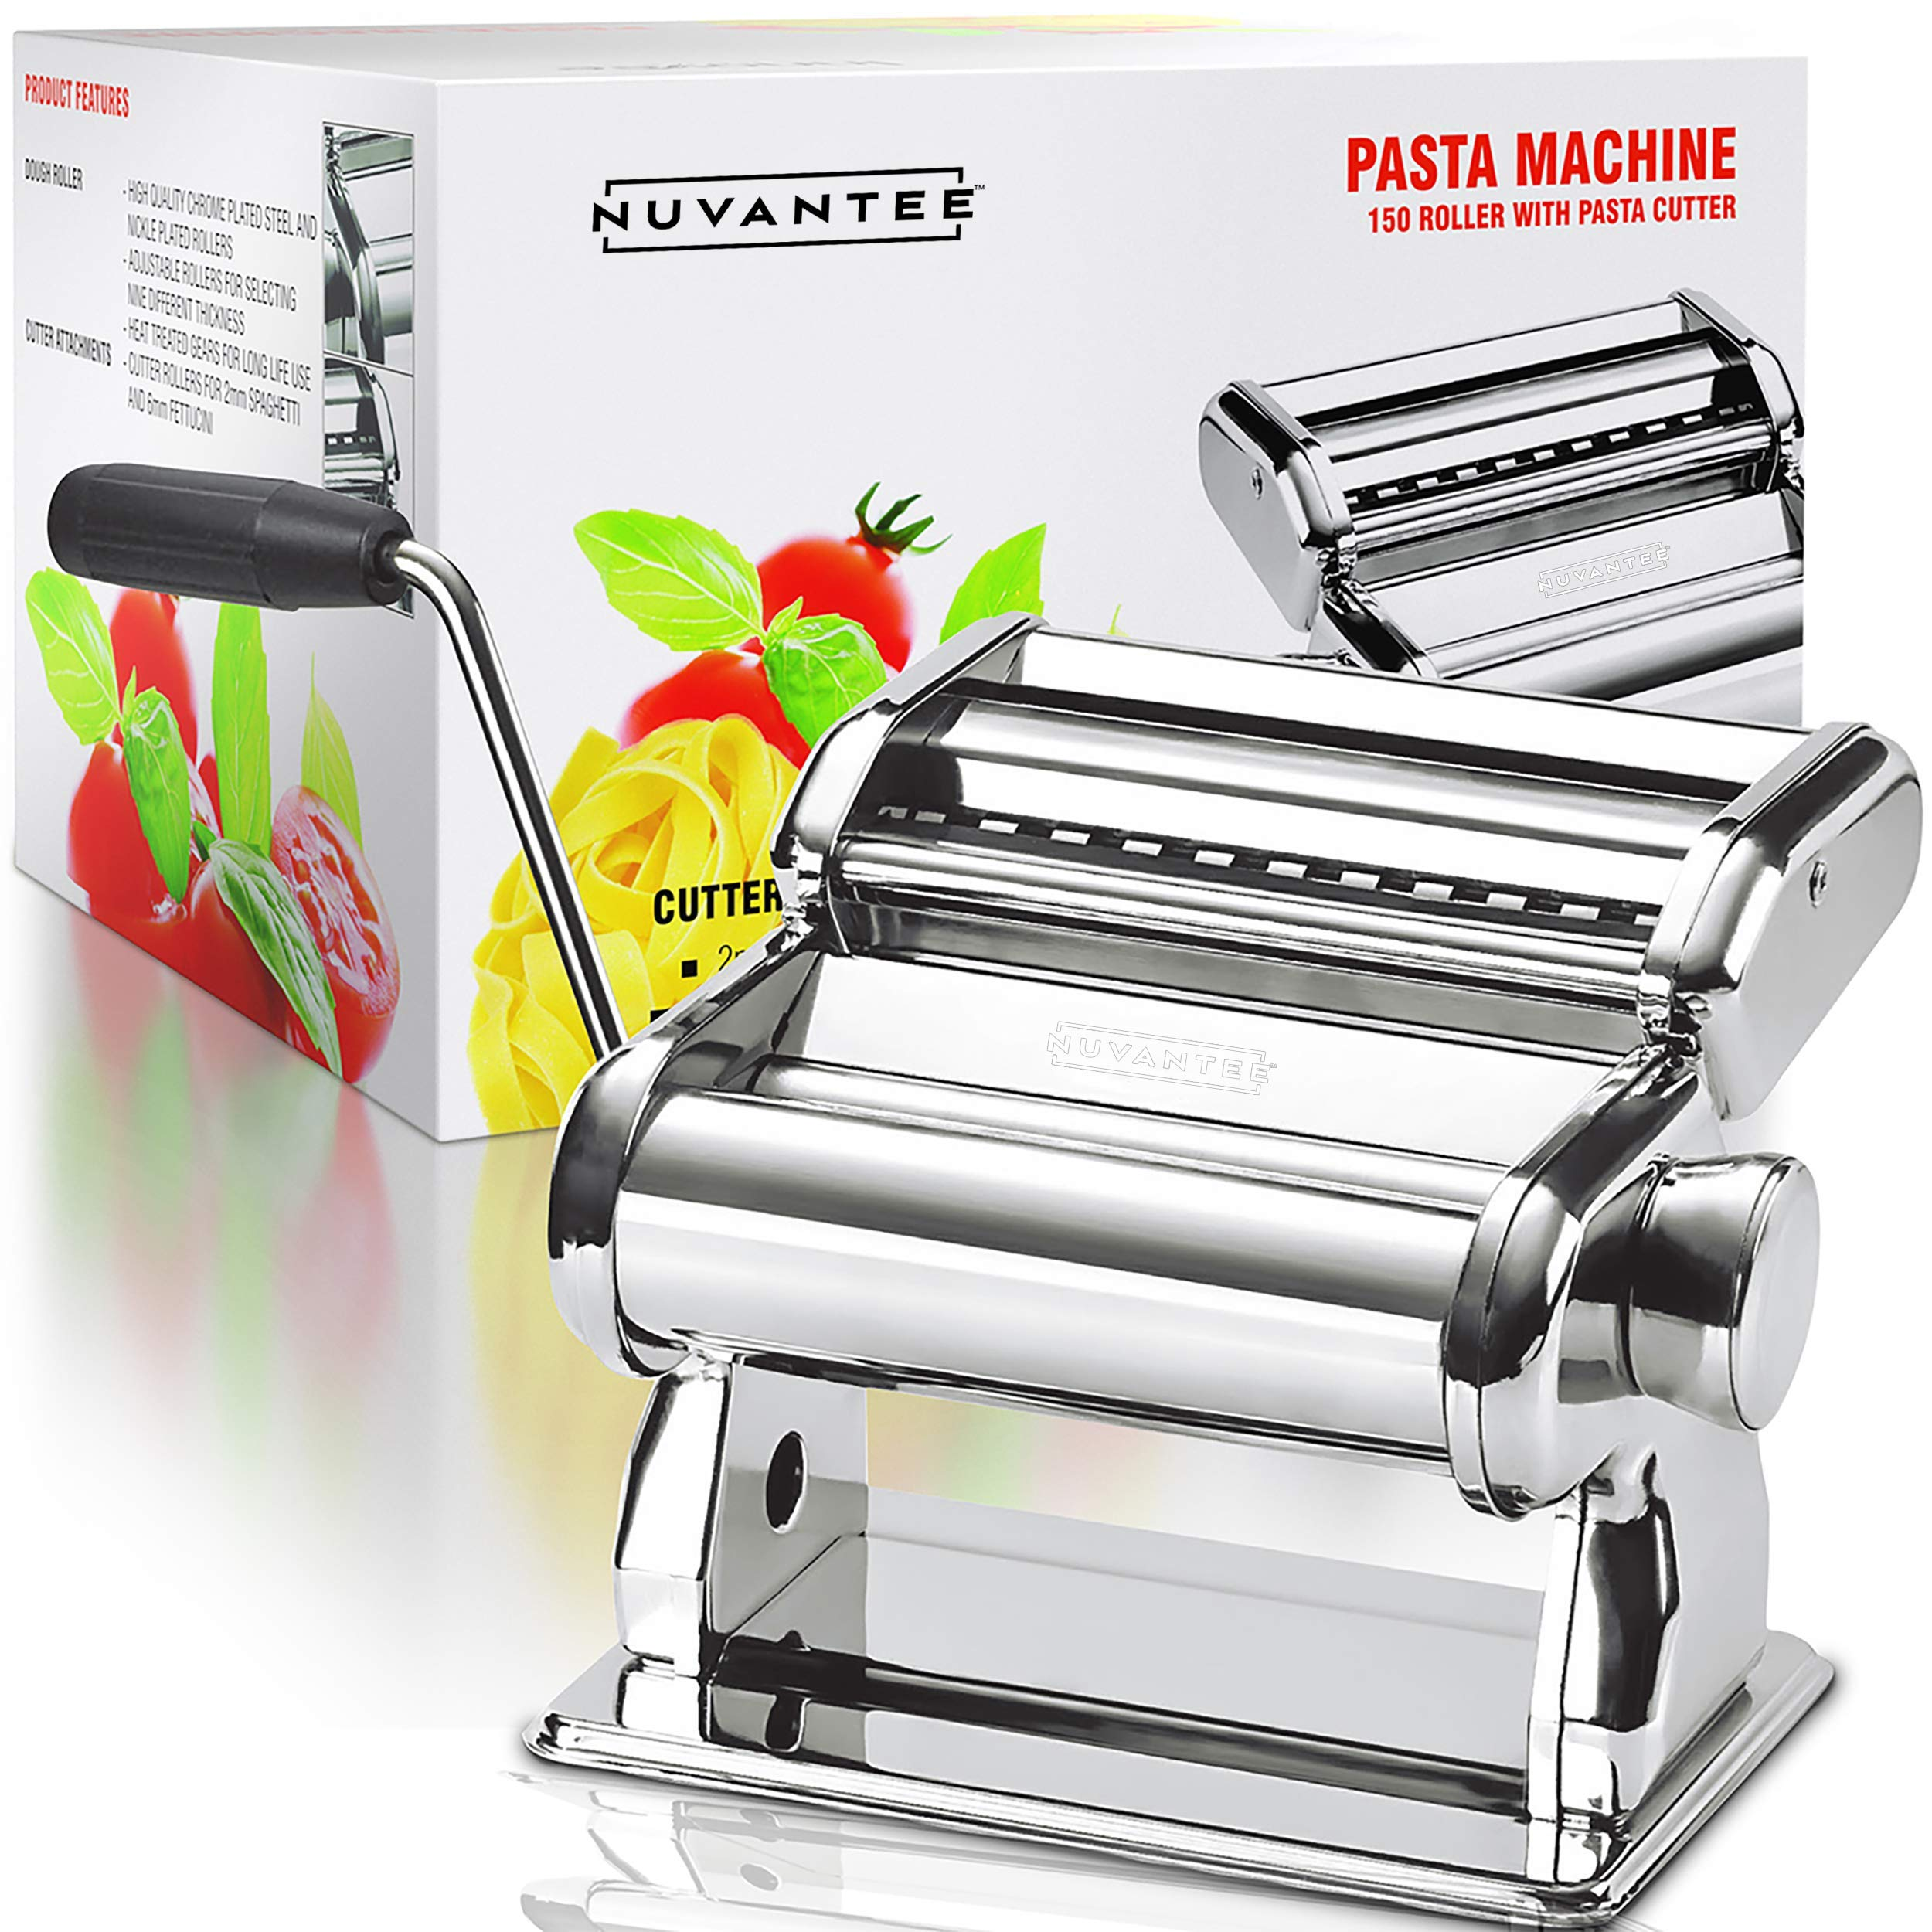 Nuvantee Pasta Maker - Highest Quality Pasta Machine - 150 Roller with Pasta Cutter - 7 Adjustable Thickness Settings (Renewed) by Nuvantee